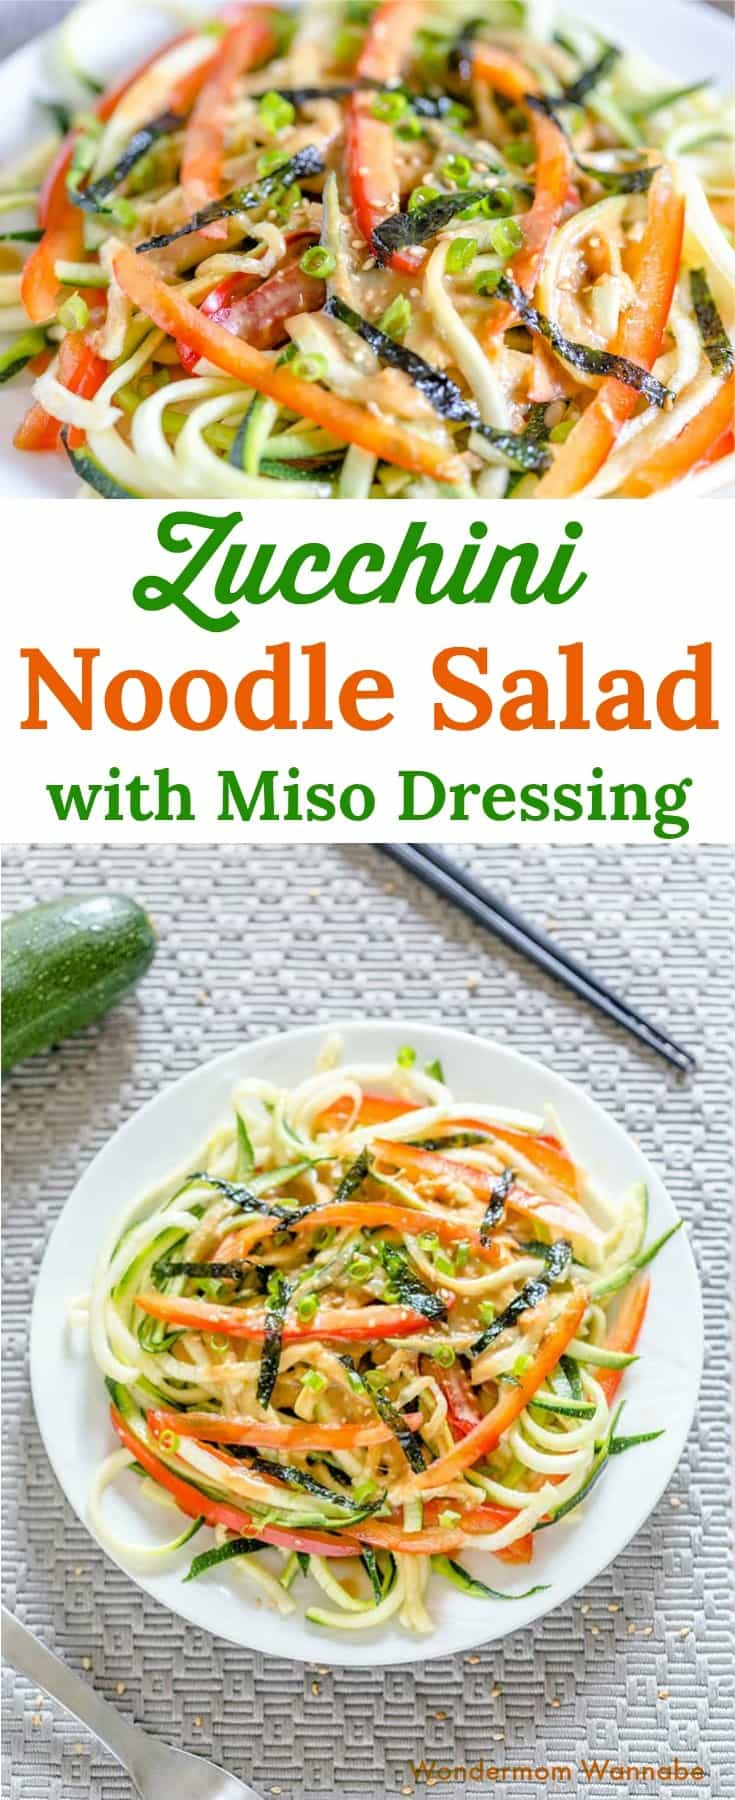 This Japanese Zucchini Noodle Salad is a delicious low-carb alternative to traditional spaghetti that is as pretty as it is delicious. #japanesefood #zucchininoodle #zoodles #salad  via @wondermomwannab